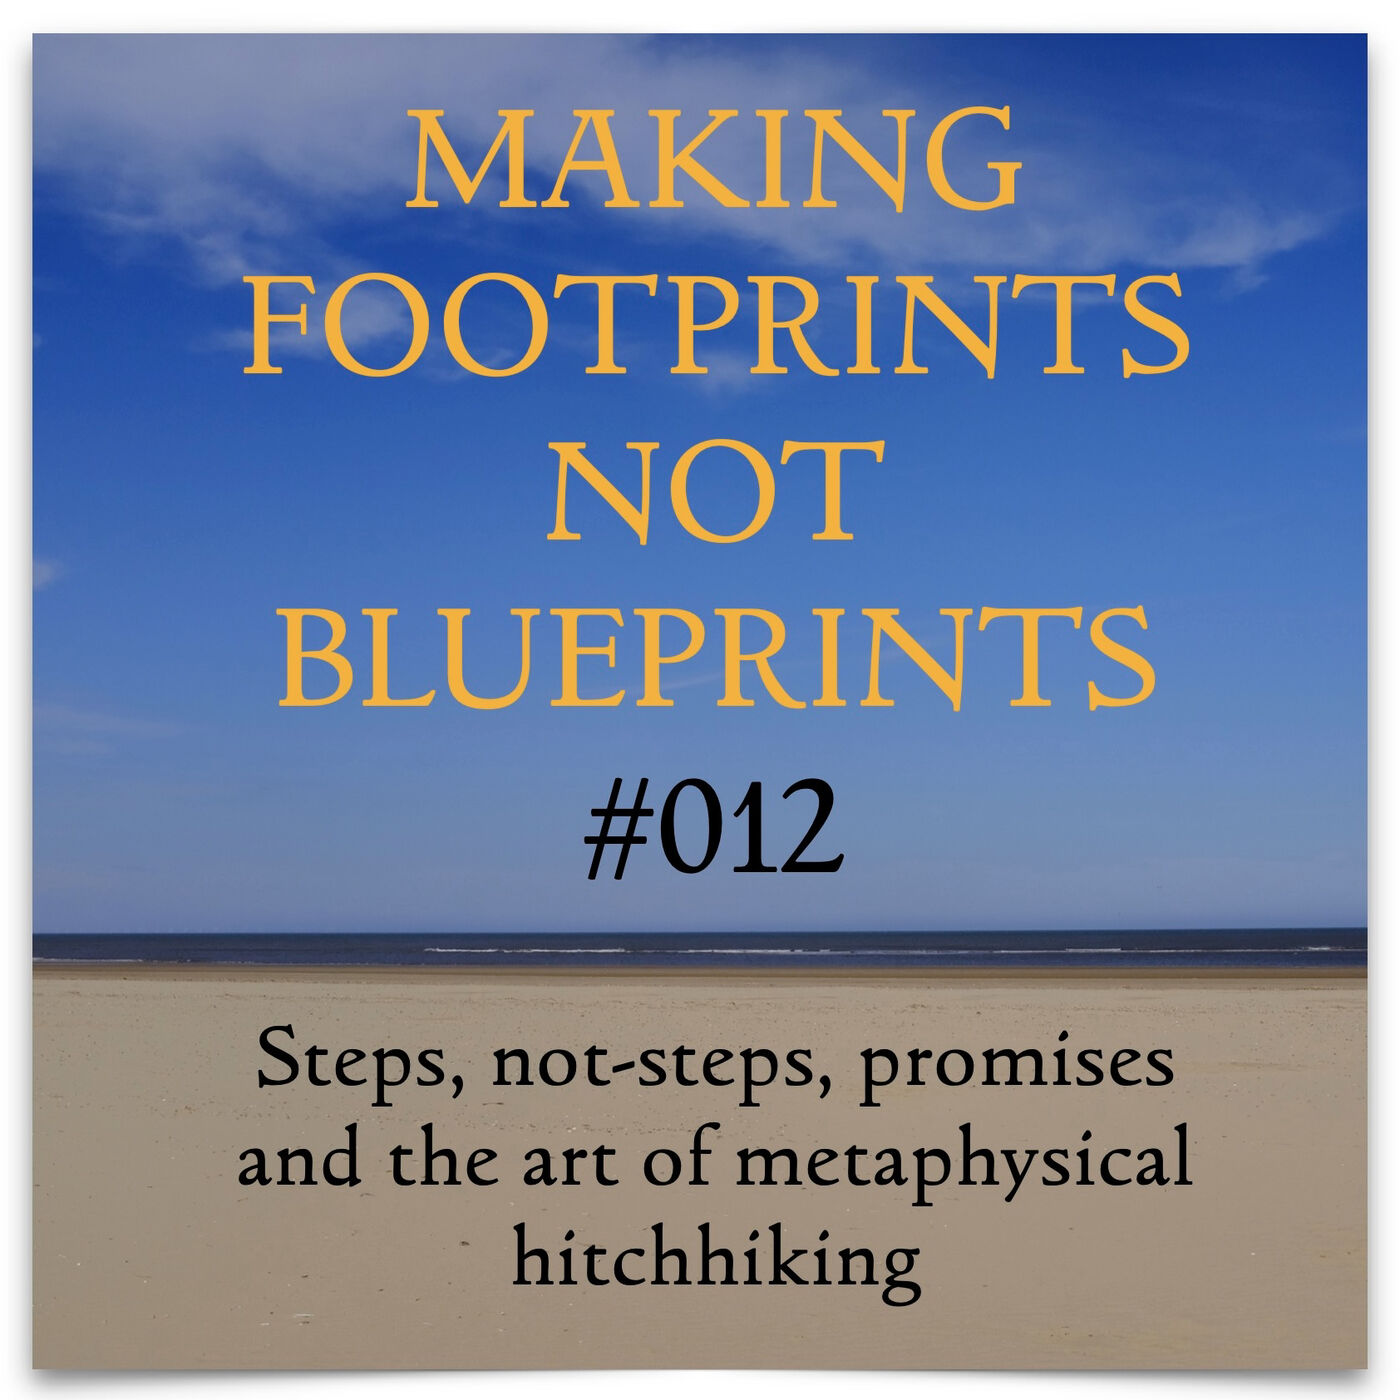 S01 #12 - Steps, not-steps, promises and the art of metaphysical hitchhiking